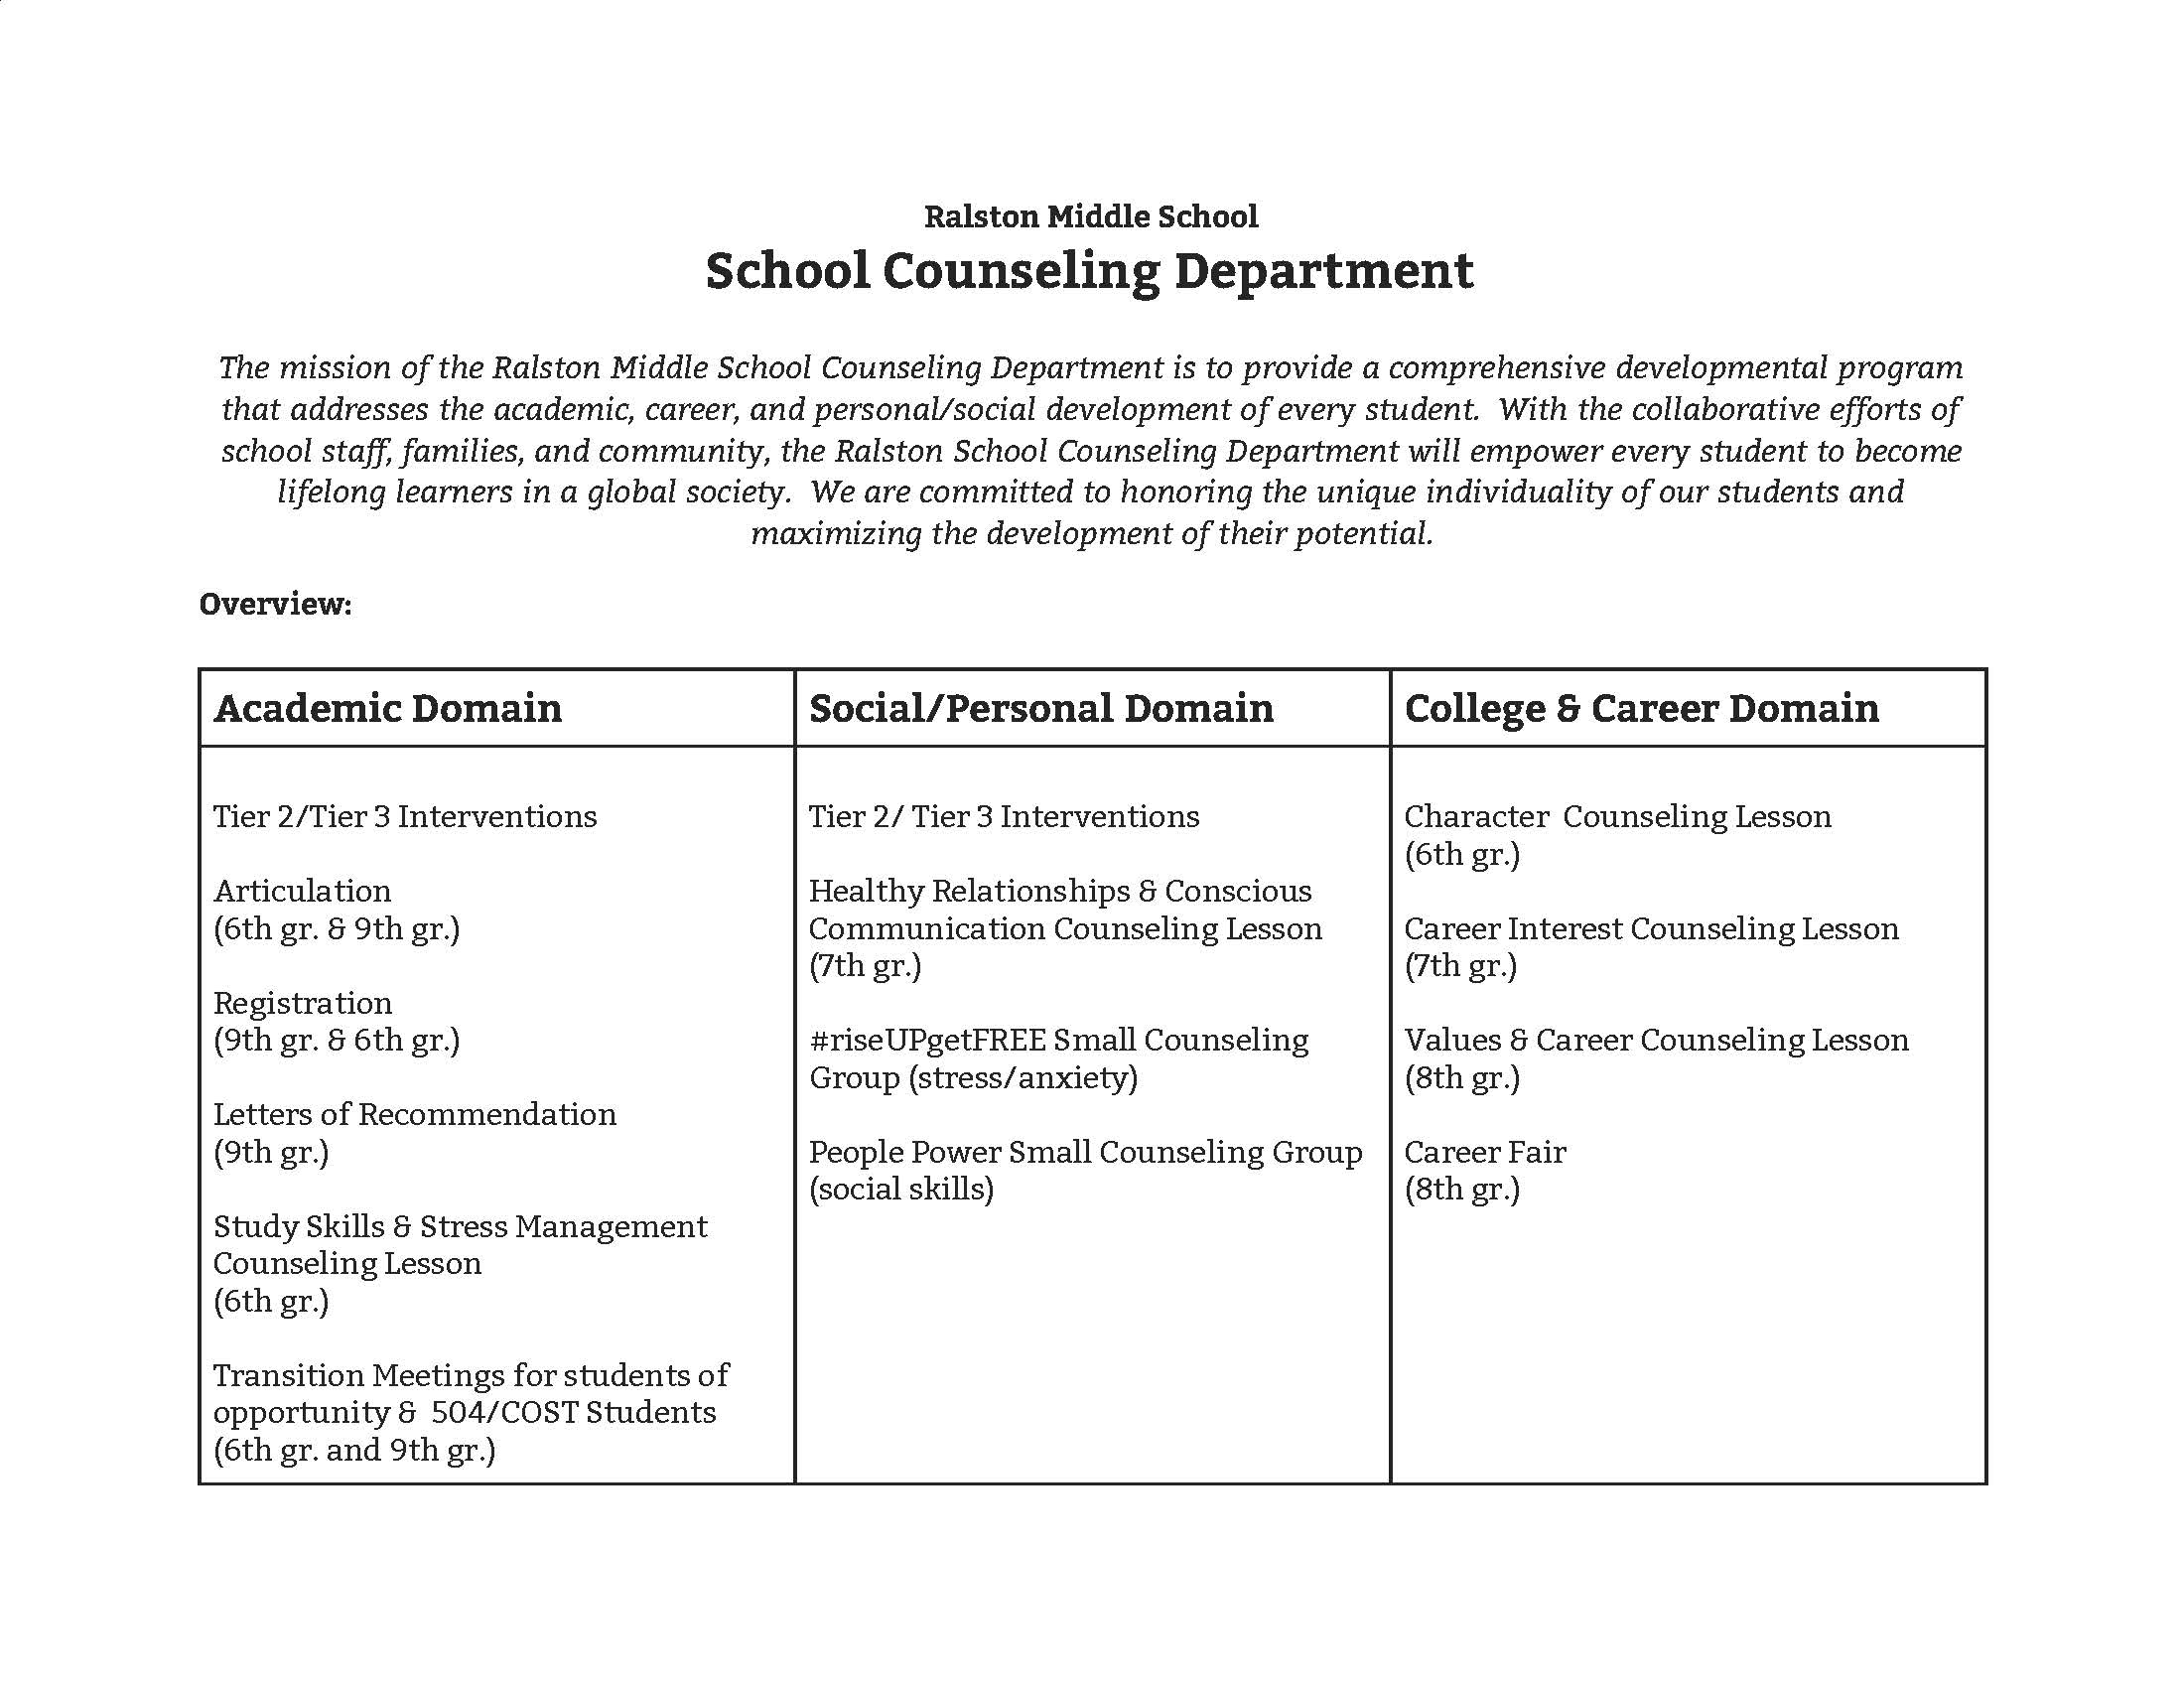 Ralston Counseling Department 10.29.18_Page_1.jpg